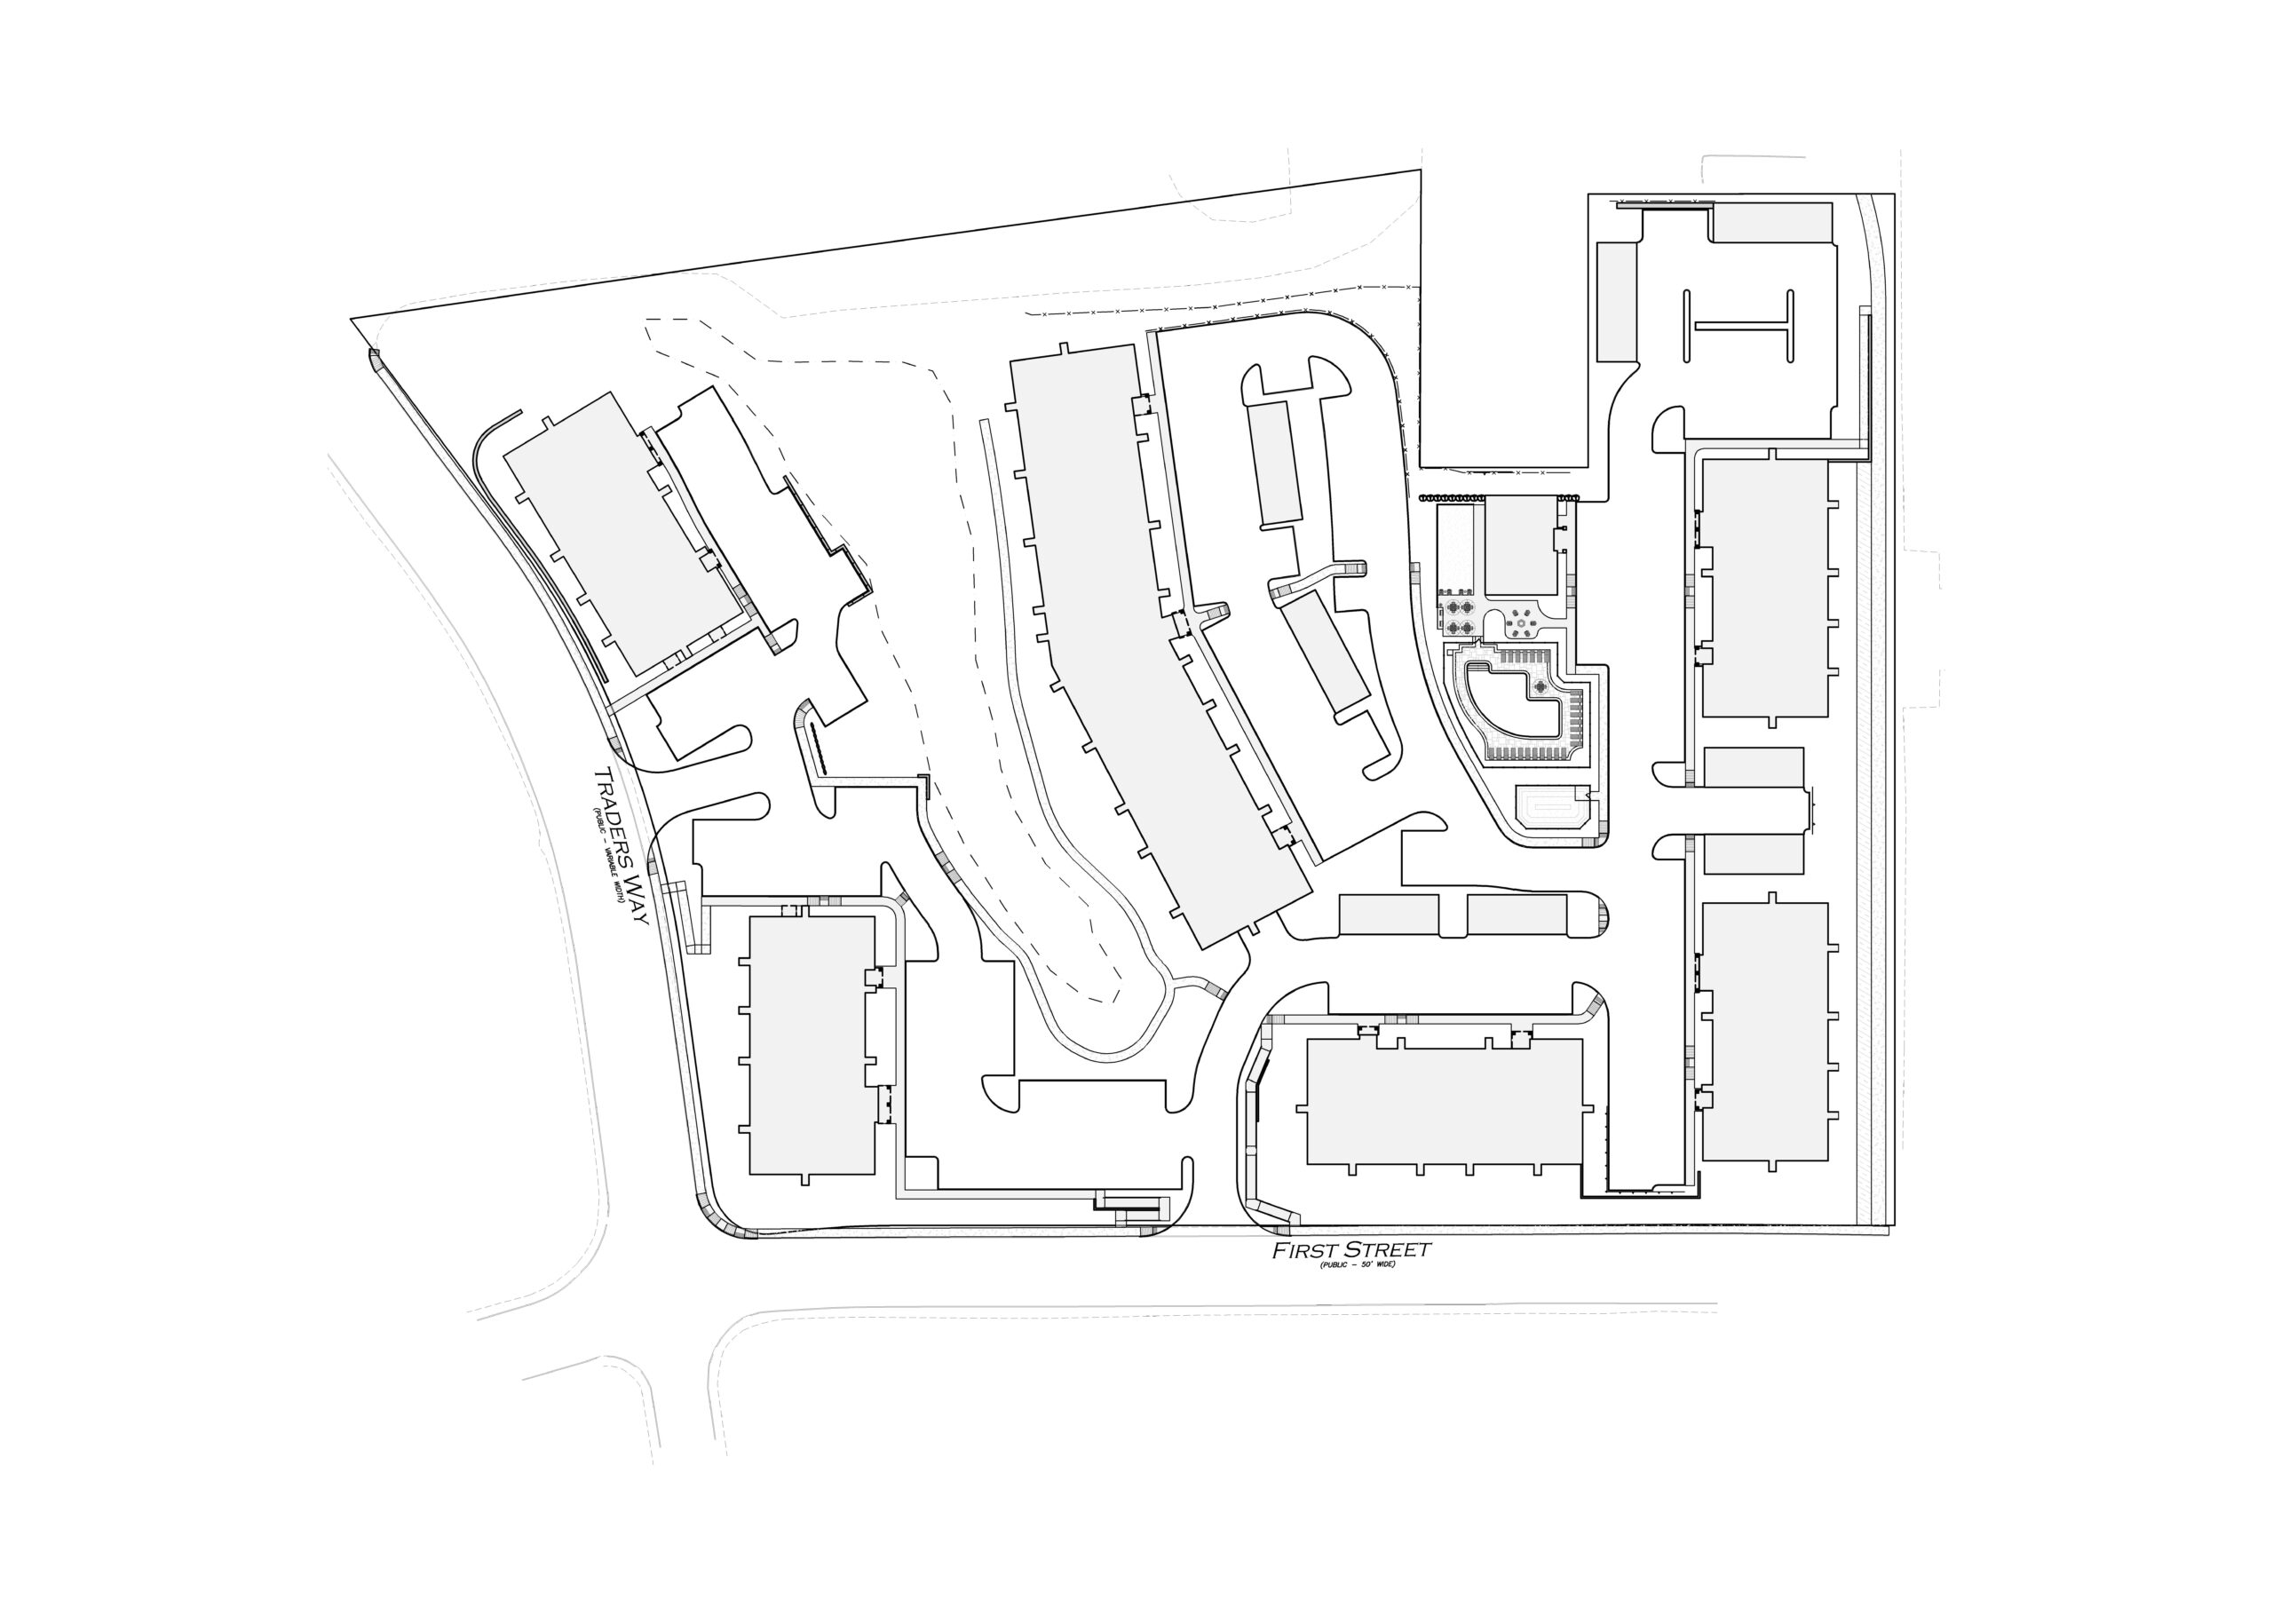 Sketch of Traders Row site plan in Salem, MA being developed by Dolben